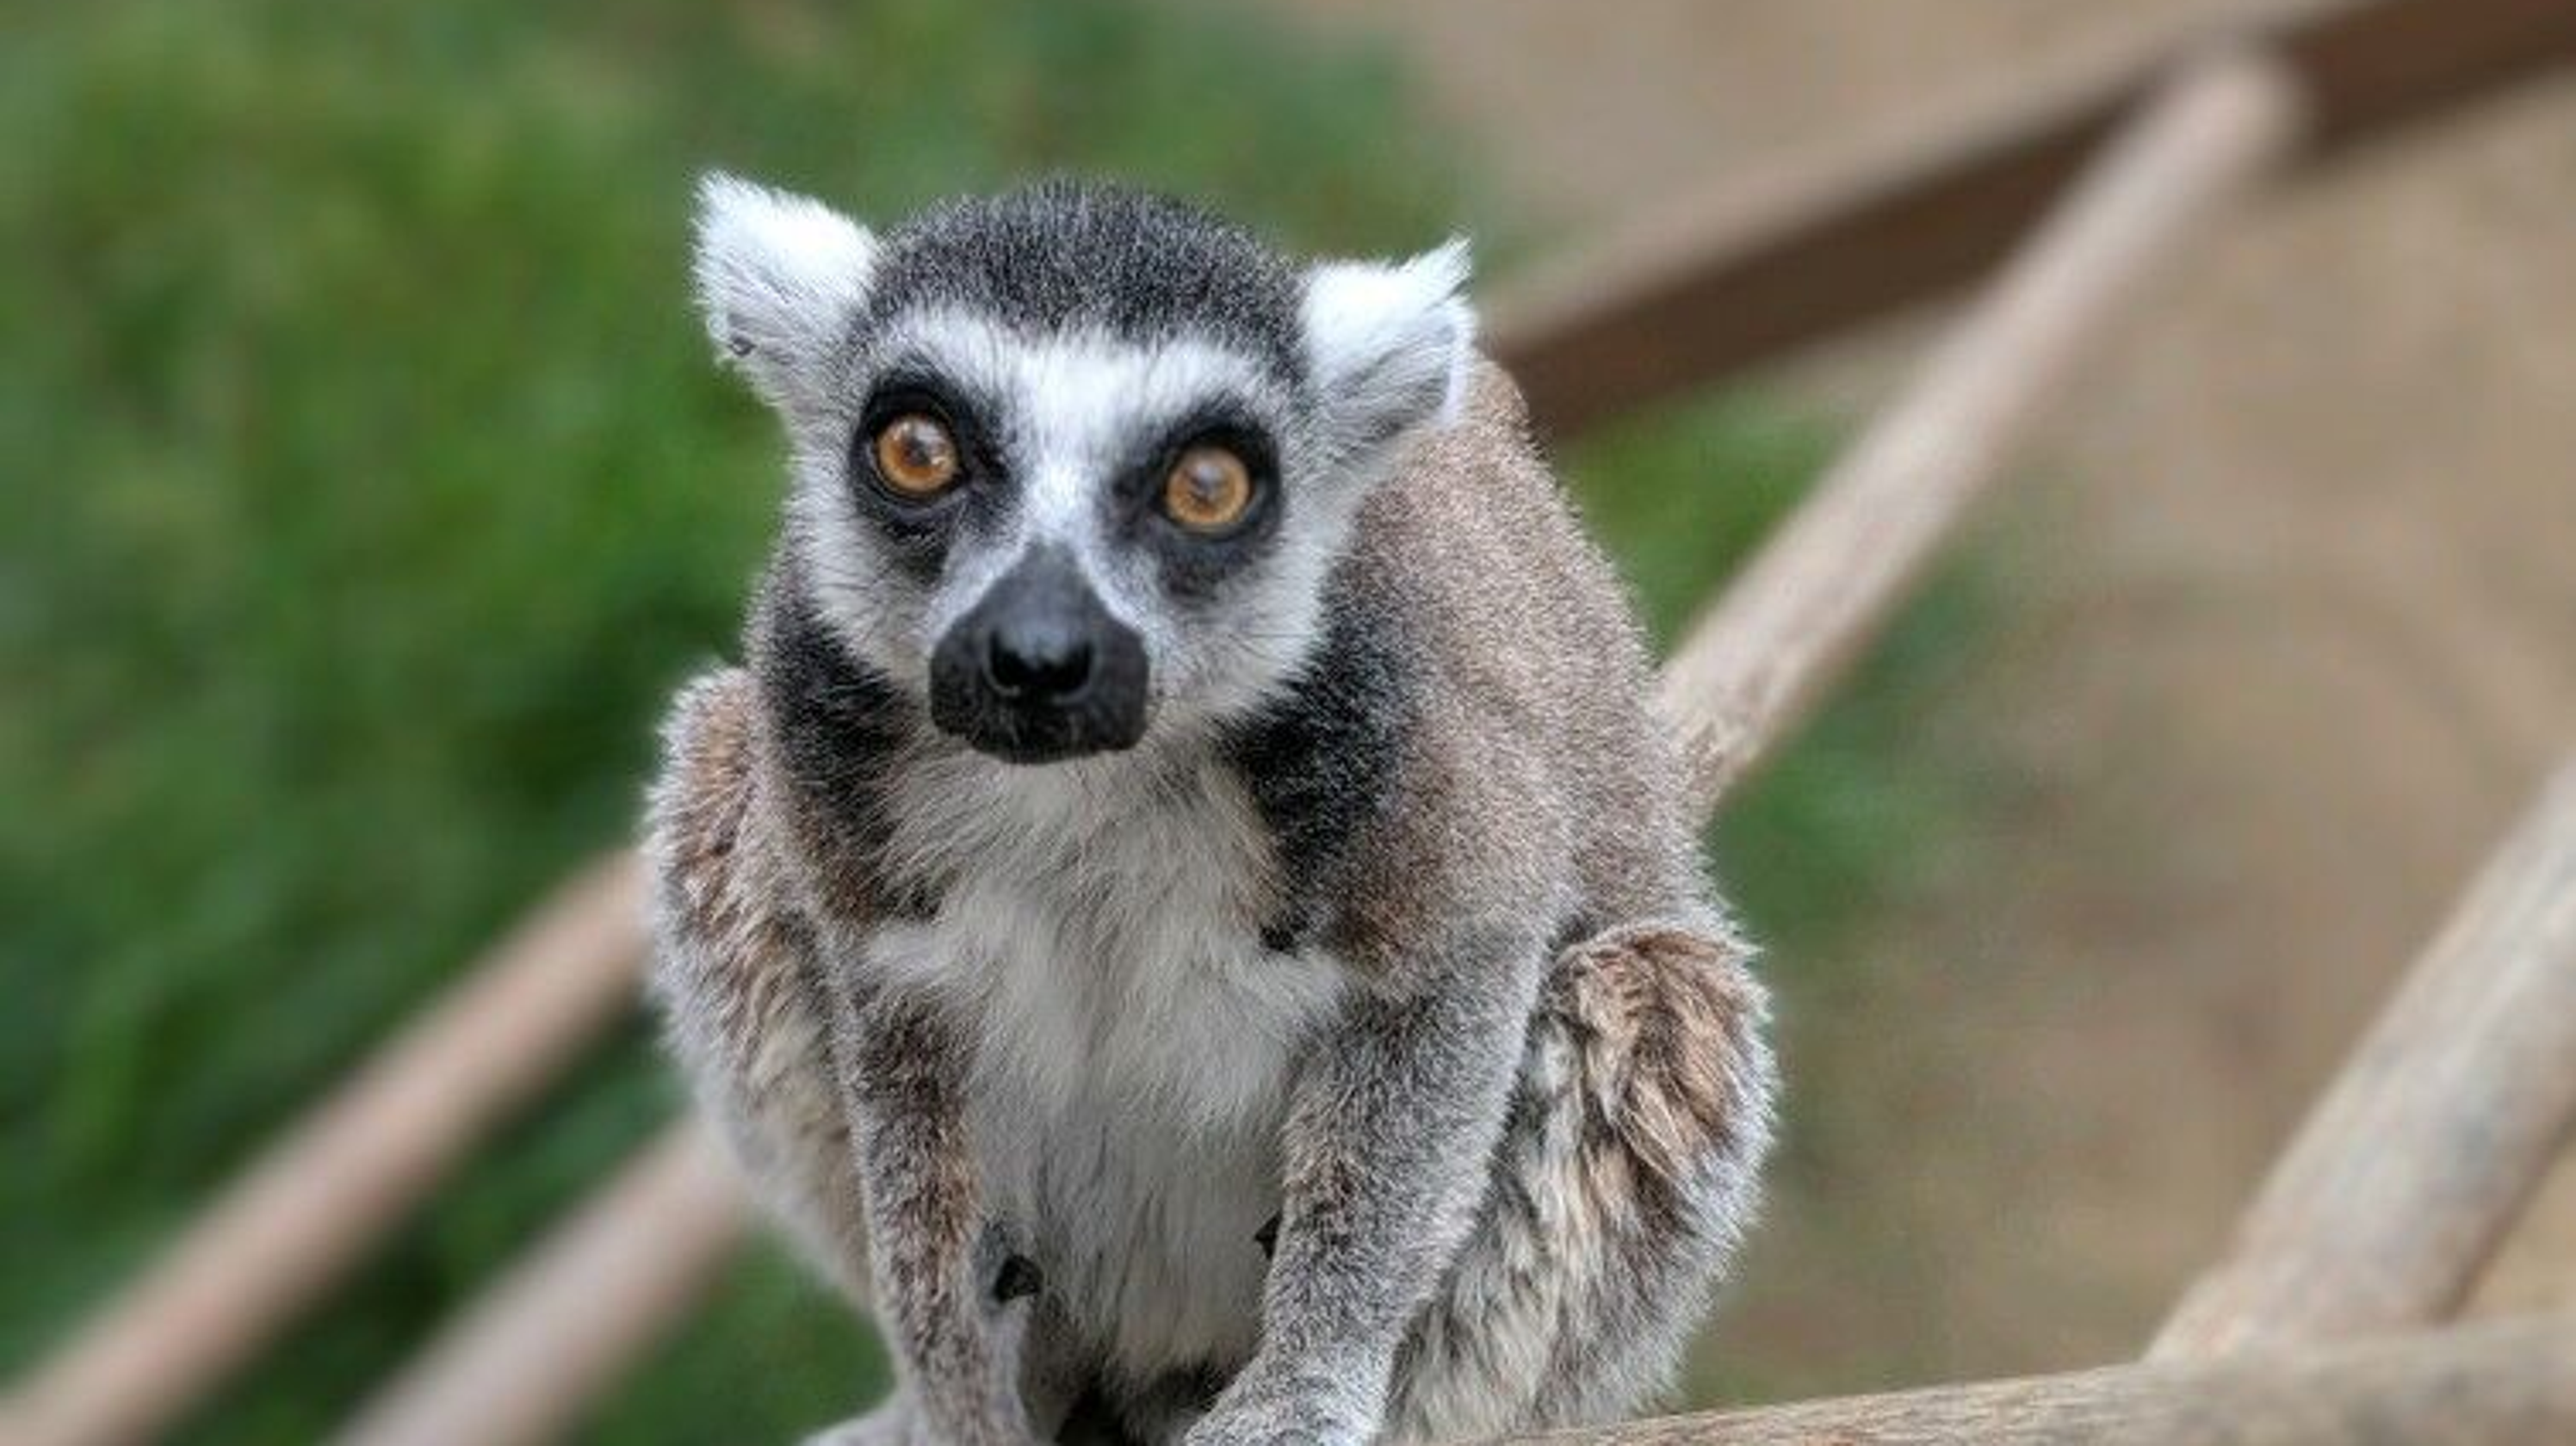 Newport Beach Man Pleads Guilty To Stealing Lemur From Santa Ana Zoo